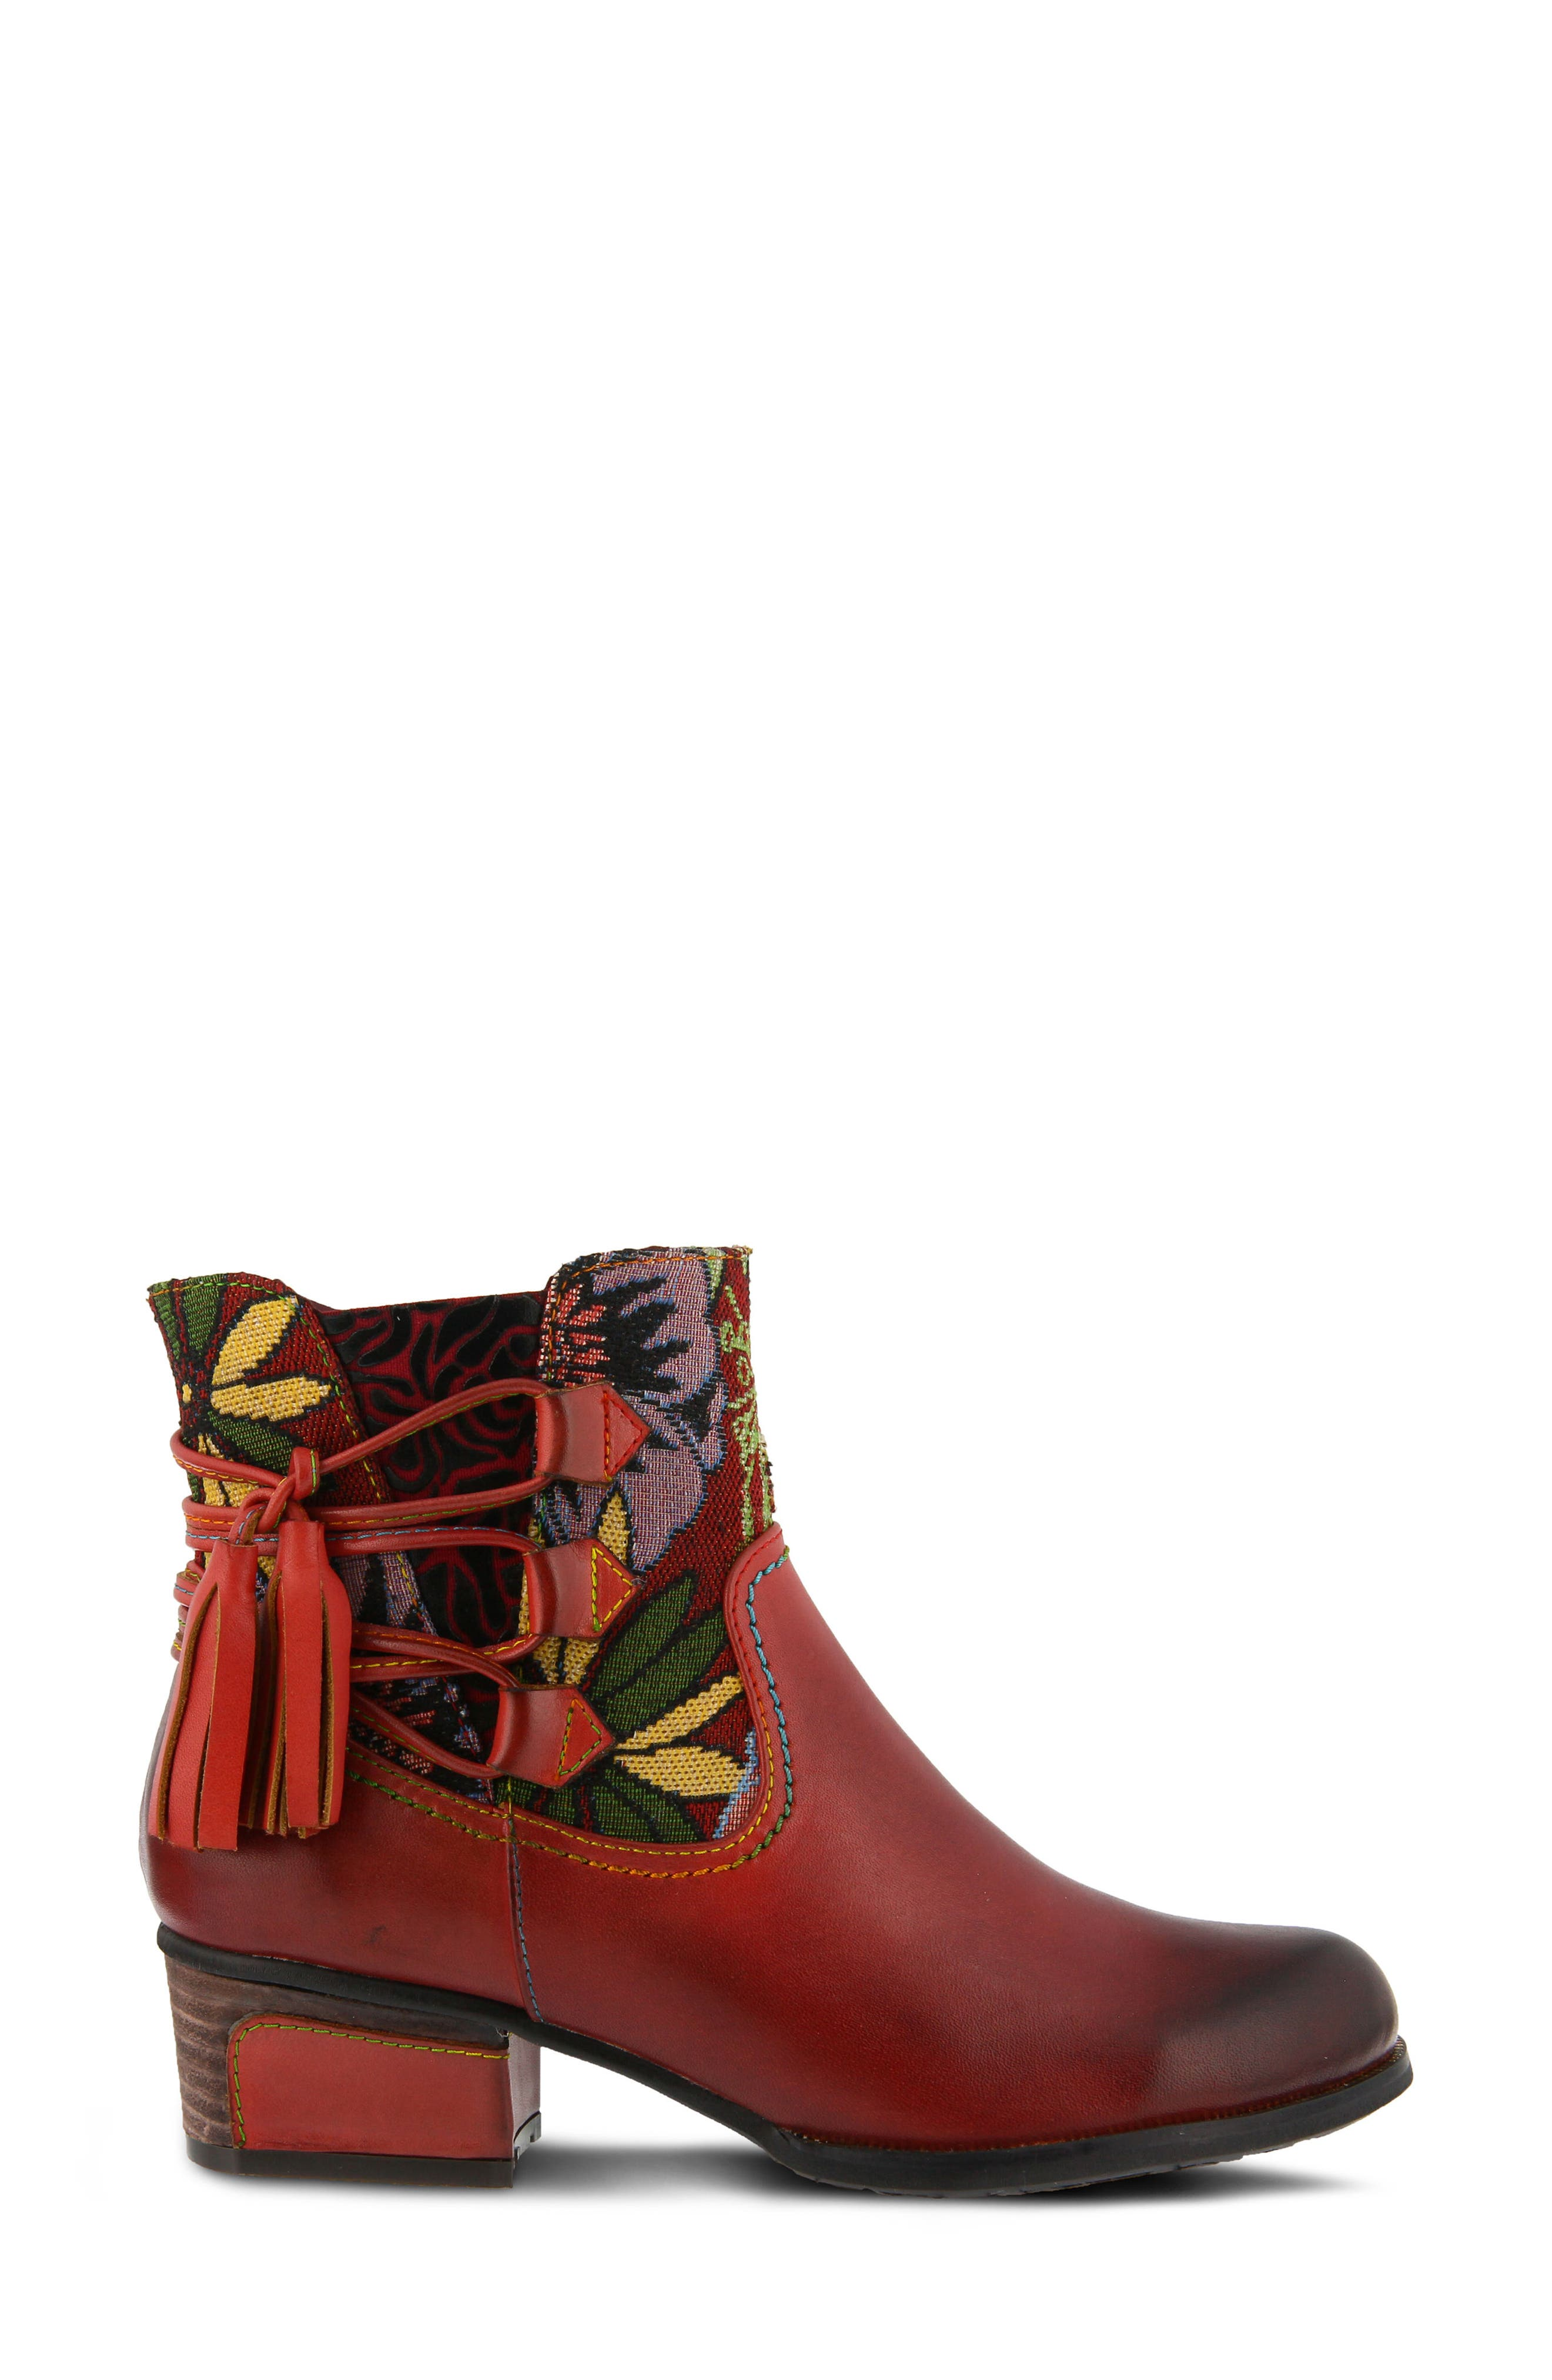 L'Artiste Live Boot,                             Alternate thumbnail 9, color,